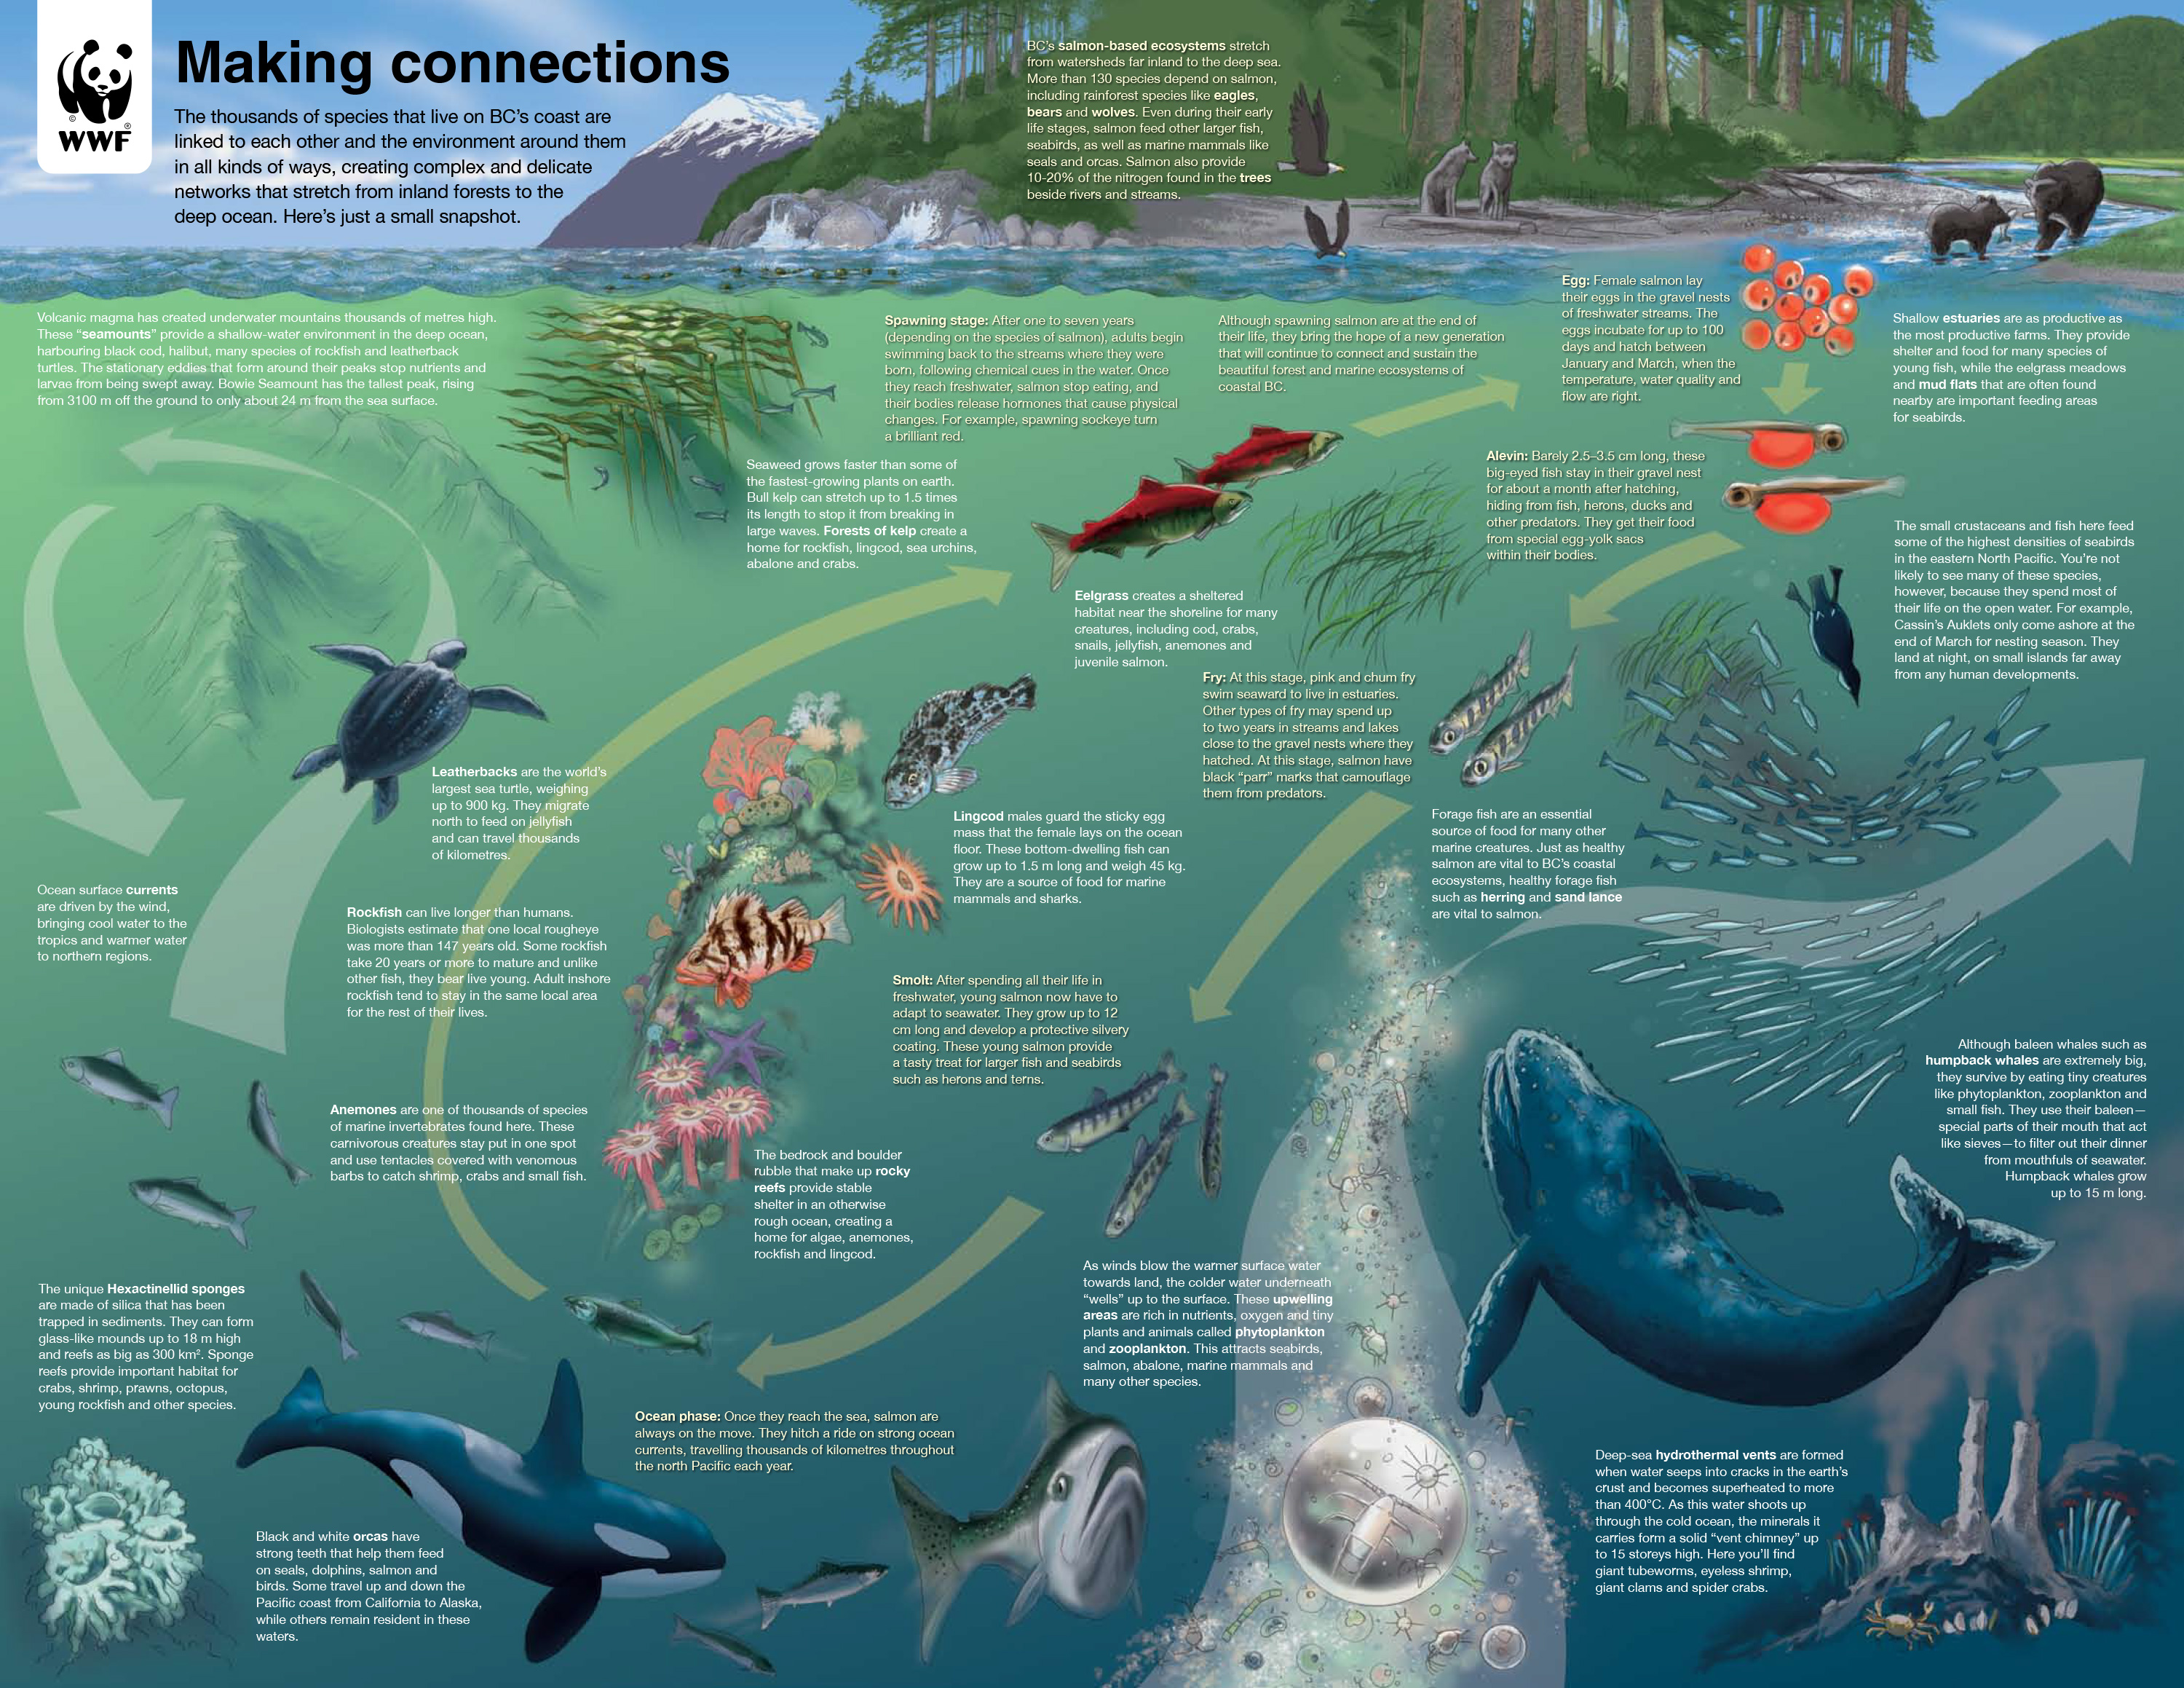 Bc marine life cycle diagram watershed moment wwf bc marine life cycle diagram ccuart Image collections